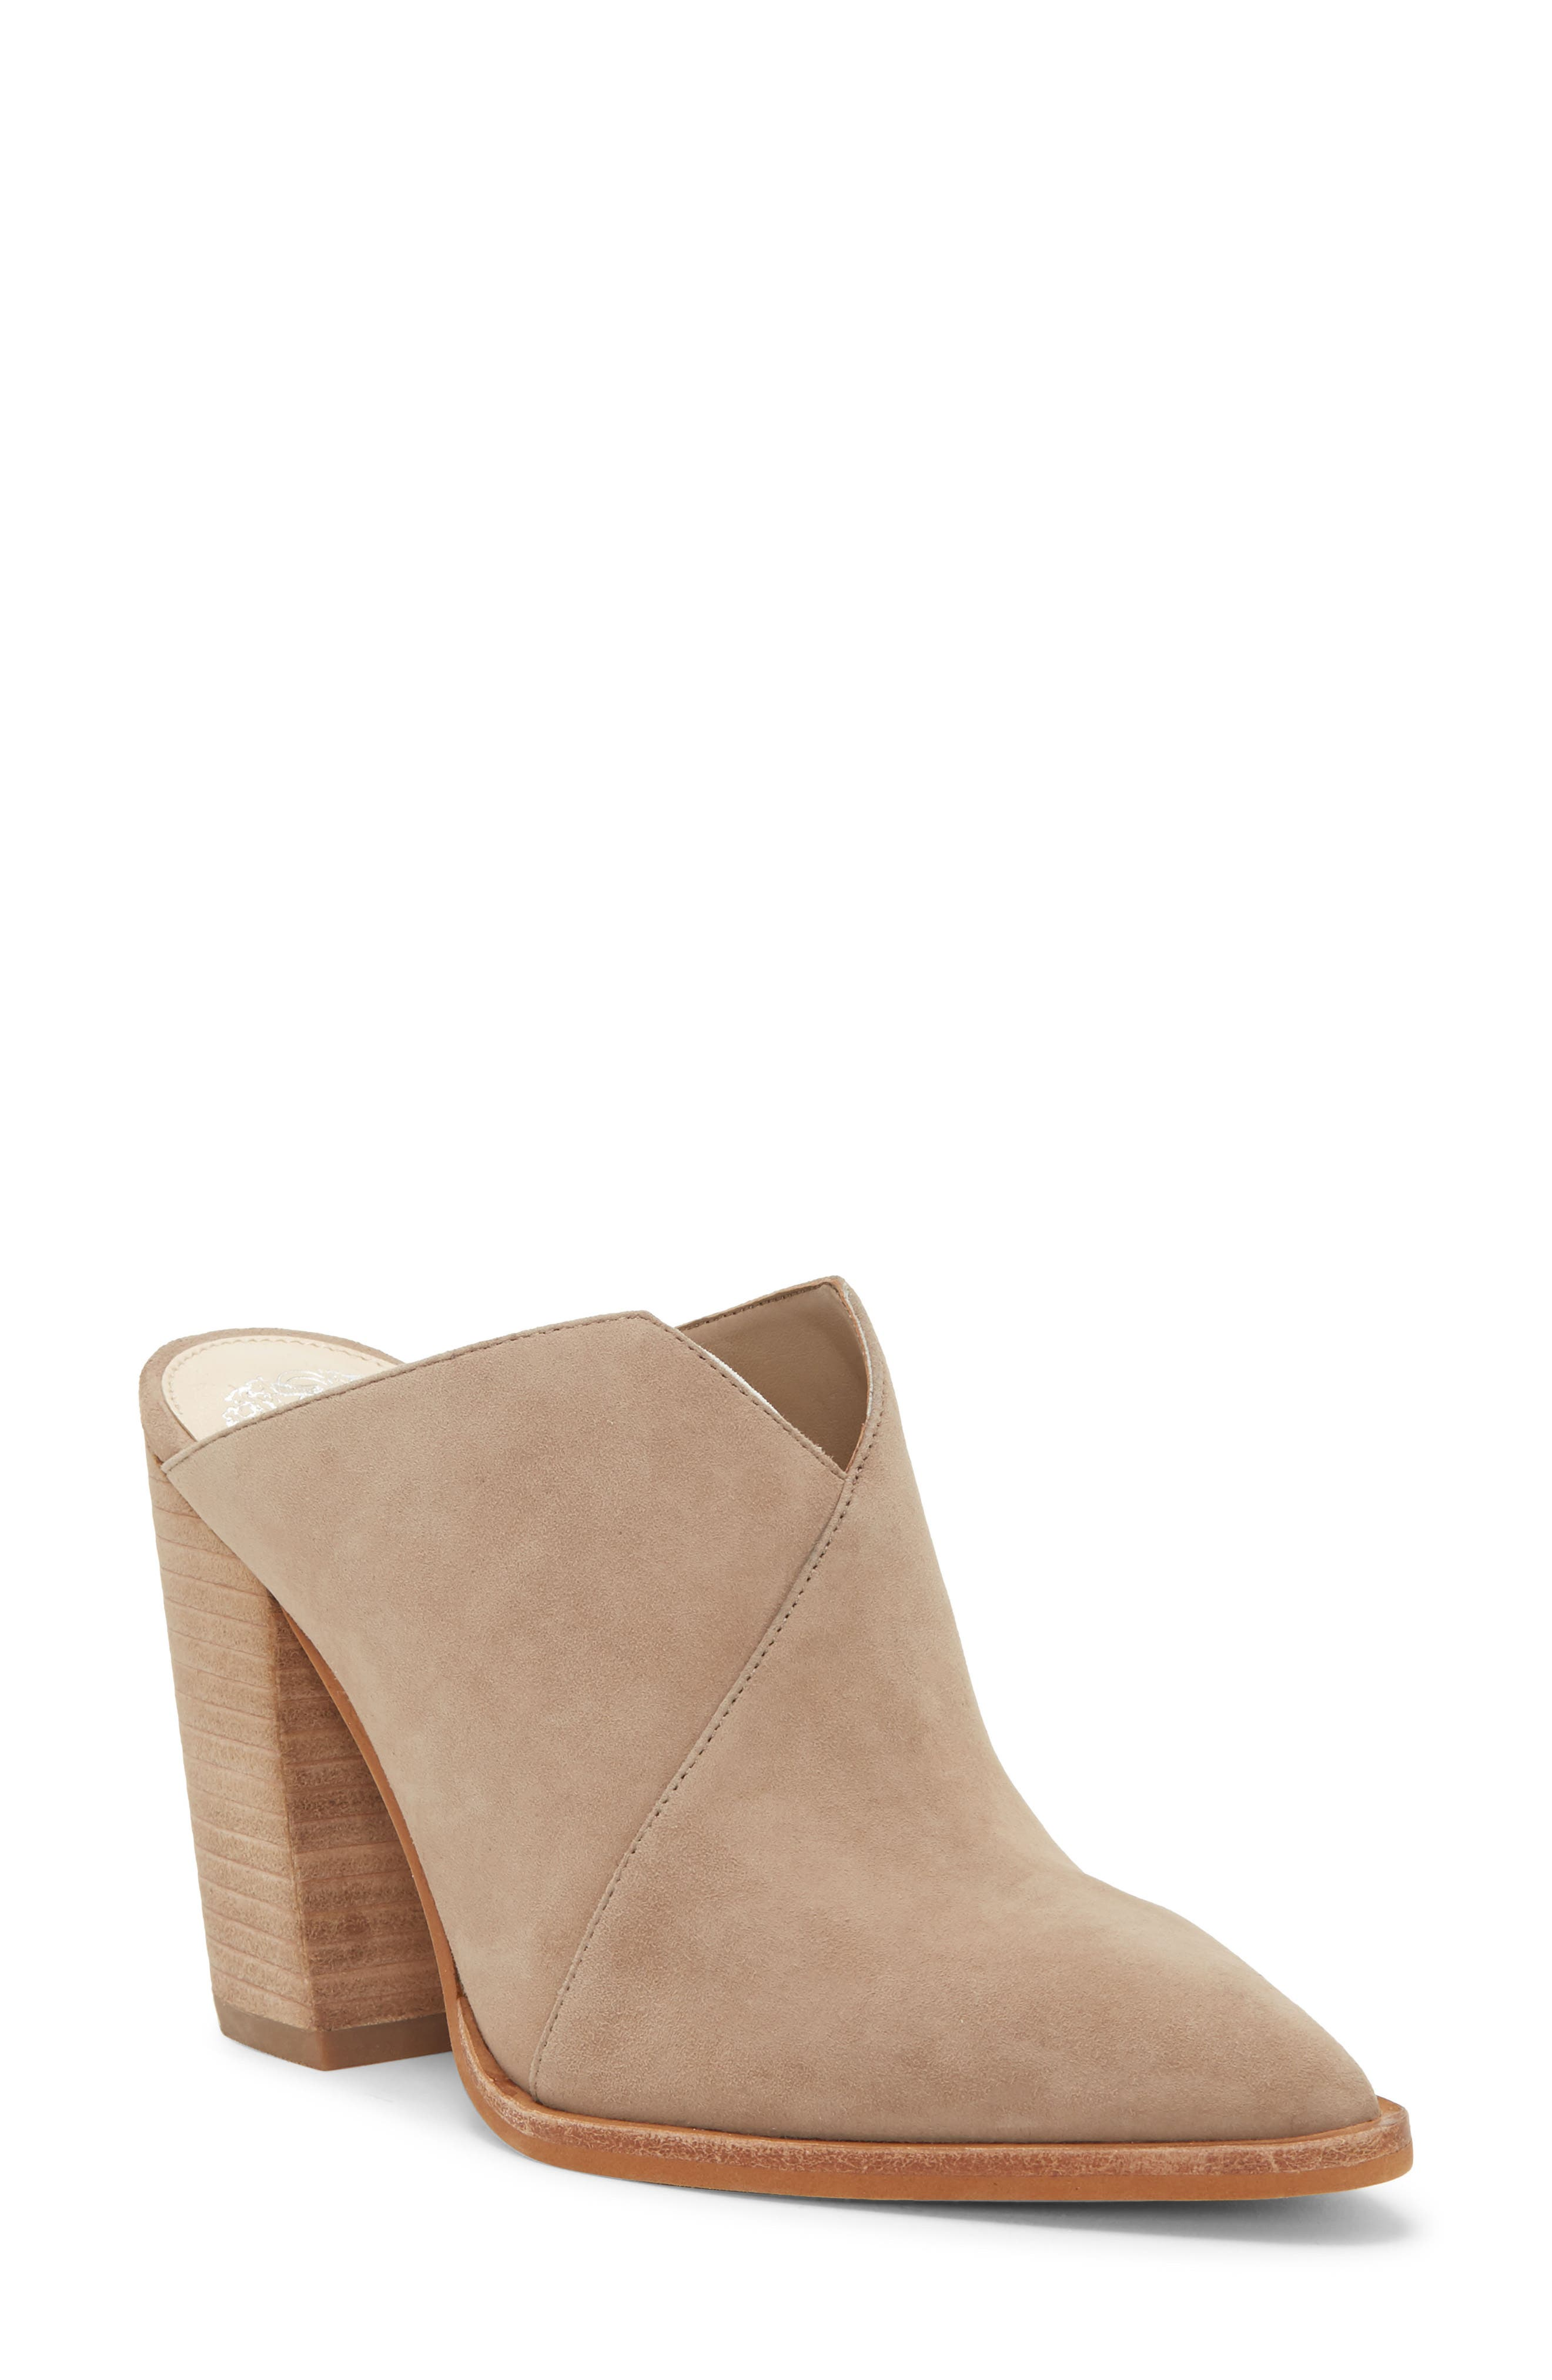 Vince Camuto Crissidy Mule, Beige